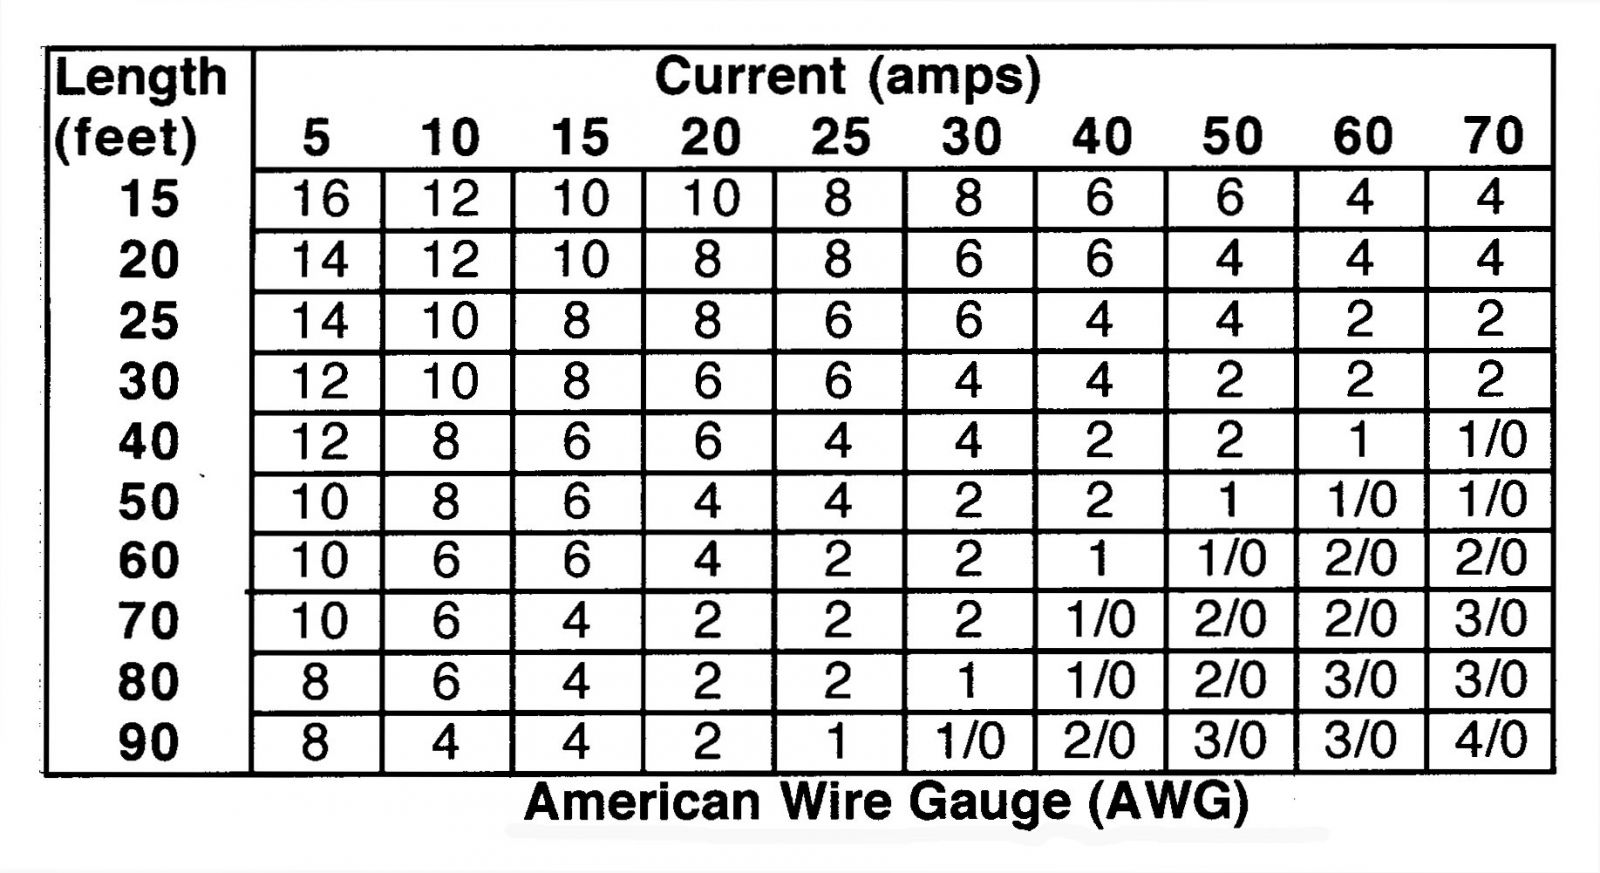 Ac wire gauge distance chart wiring info grounding electrical systems hotrod hotline rh hotrodhotline com wire gauge chart amps distance ac awg wire greentooth Gallery